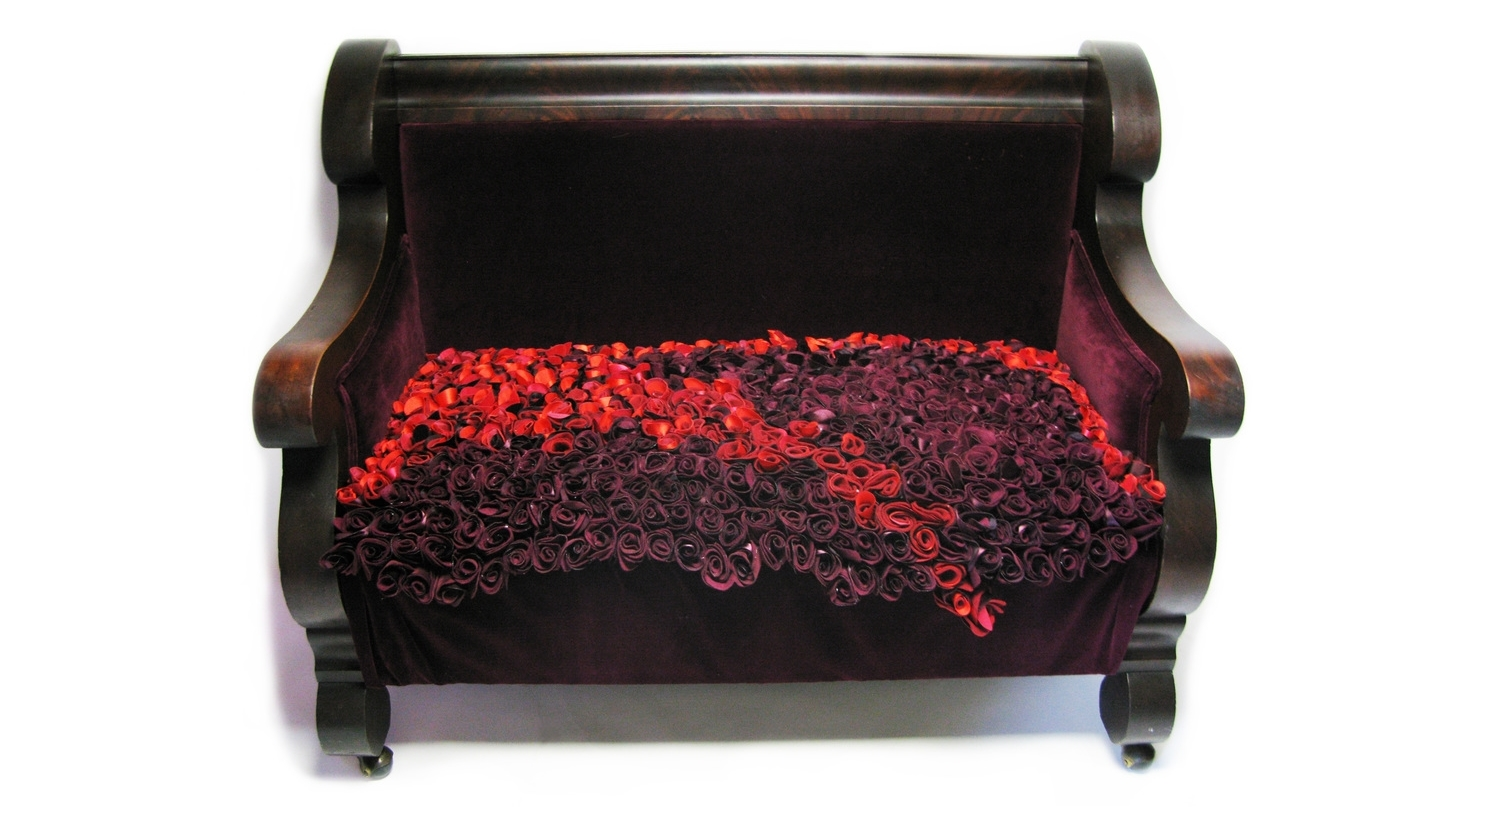 rose loveseat_bigcanvas.jpg